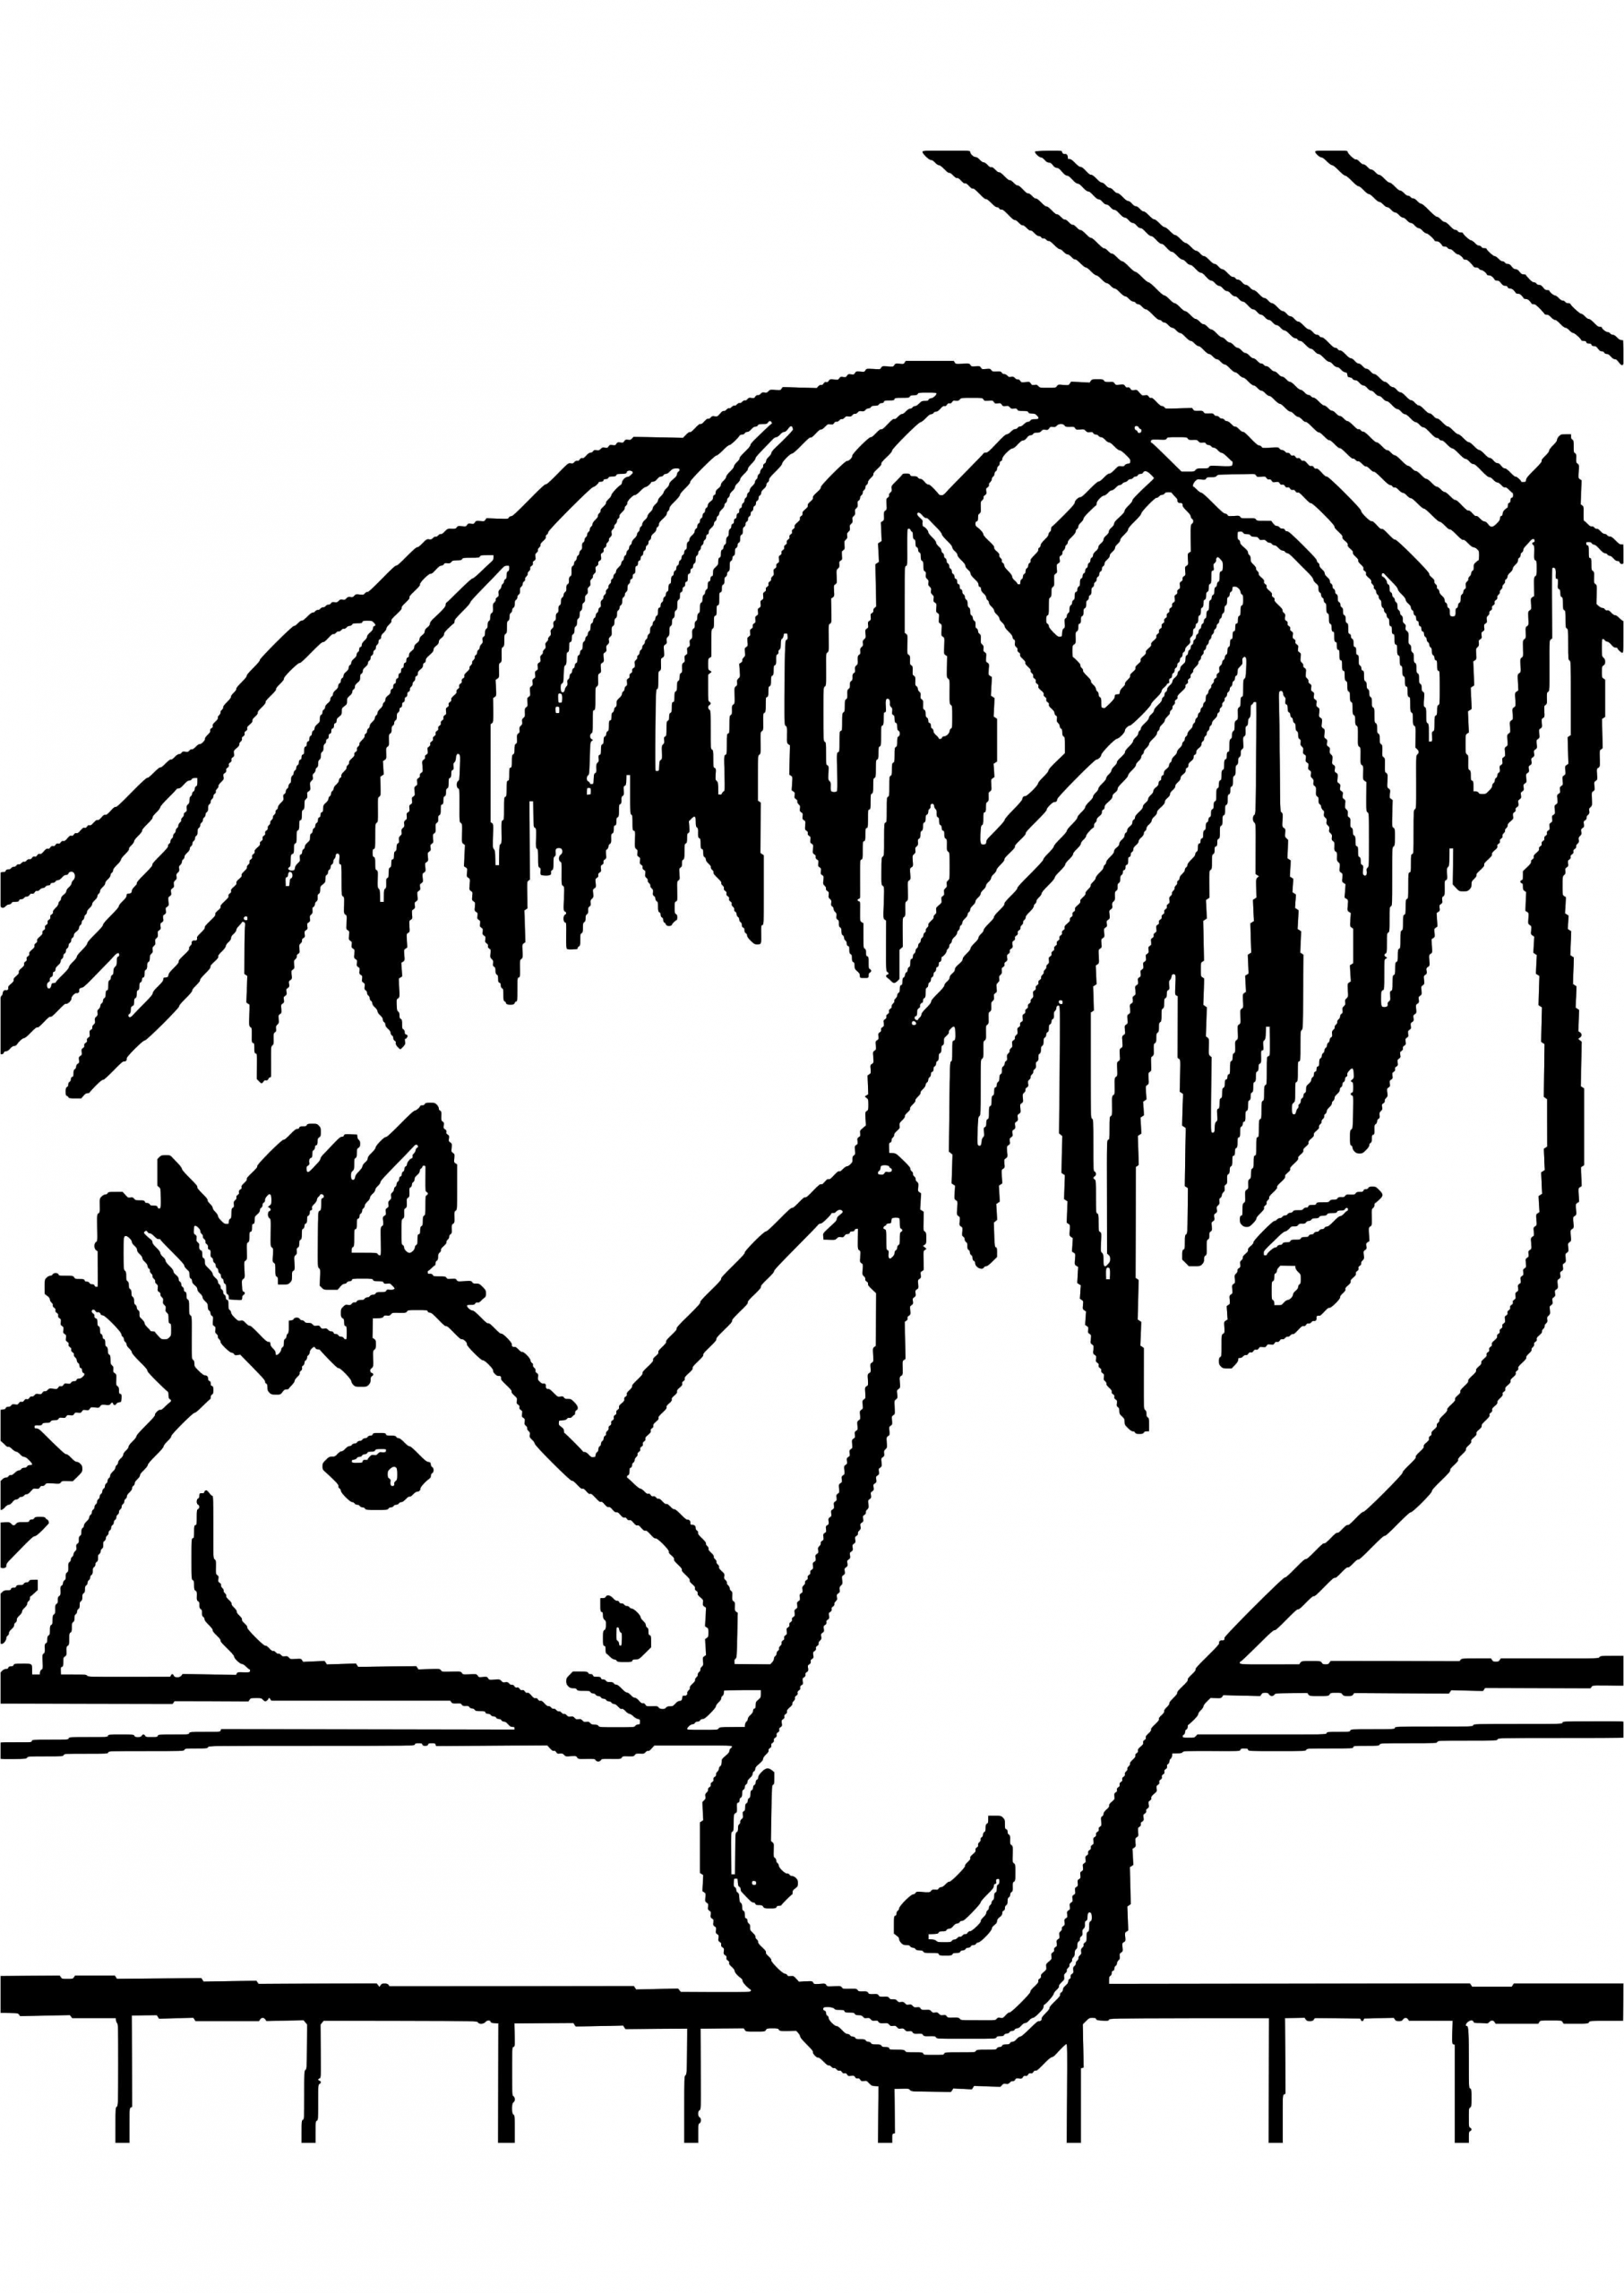 Horse Jumping Coloring Page Youngandtae Com Horse Coloring Pages Farm Animal Coloring Pages Horse Coloring